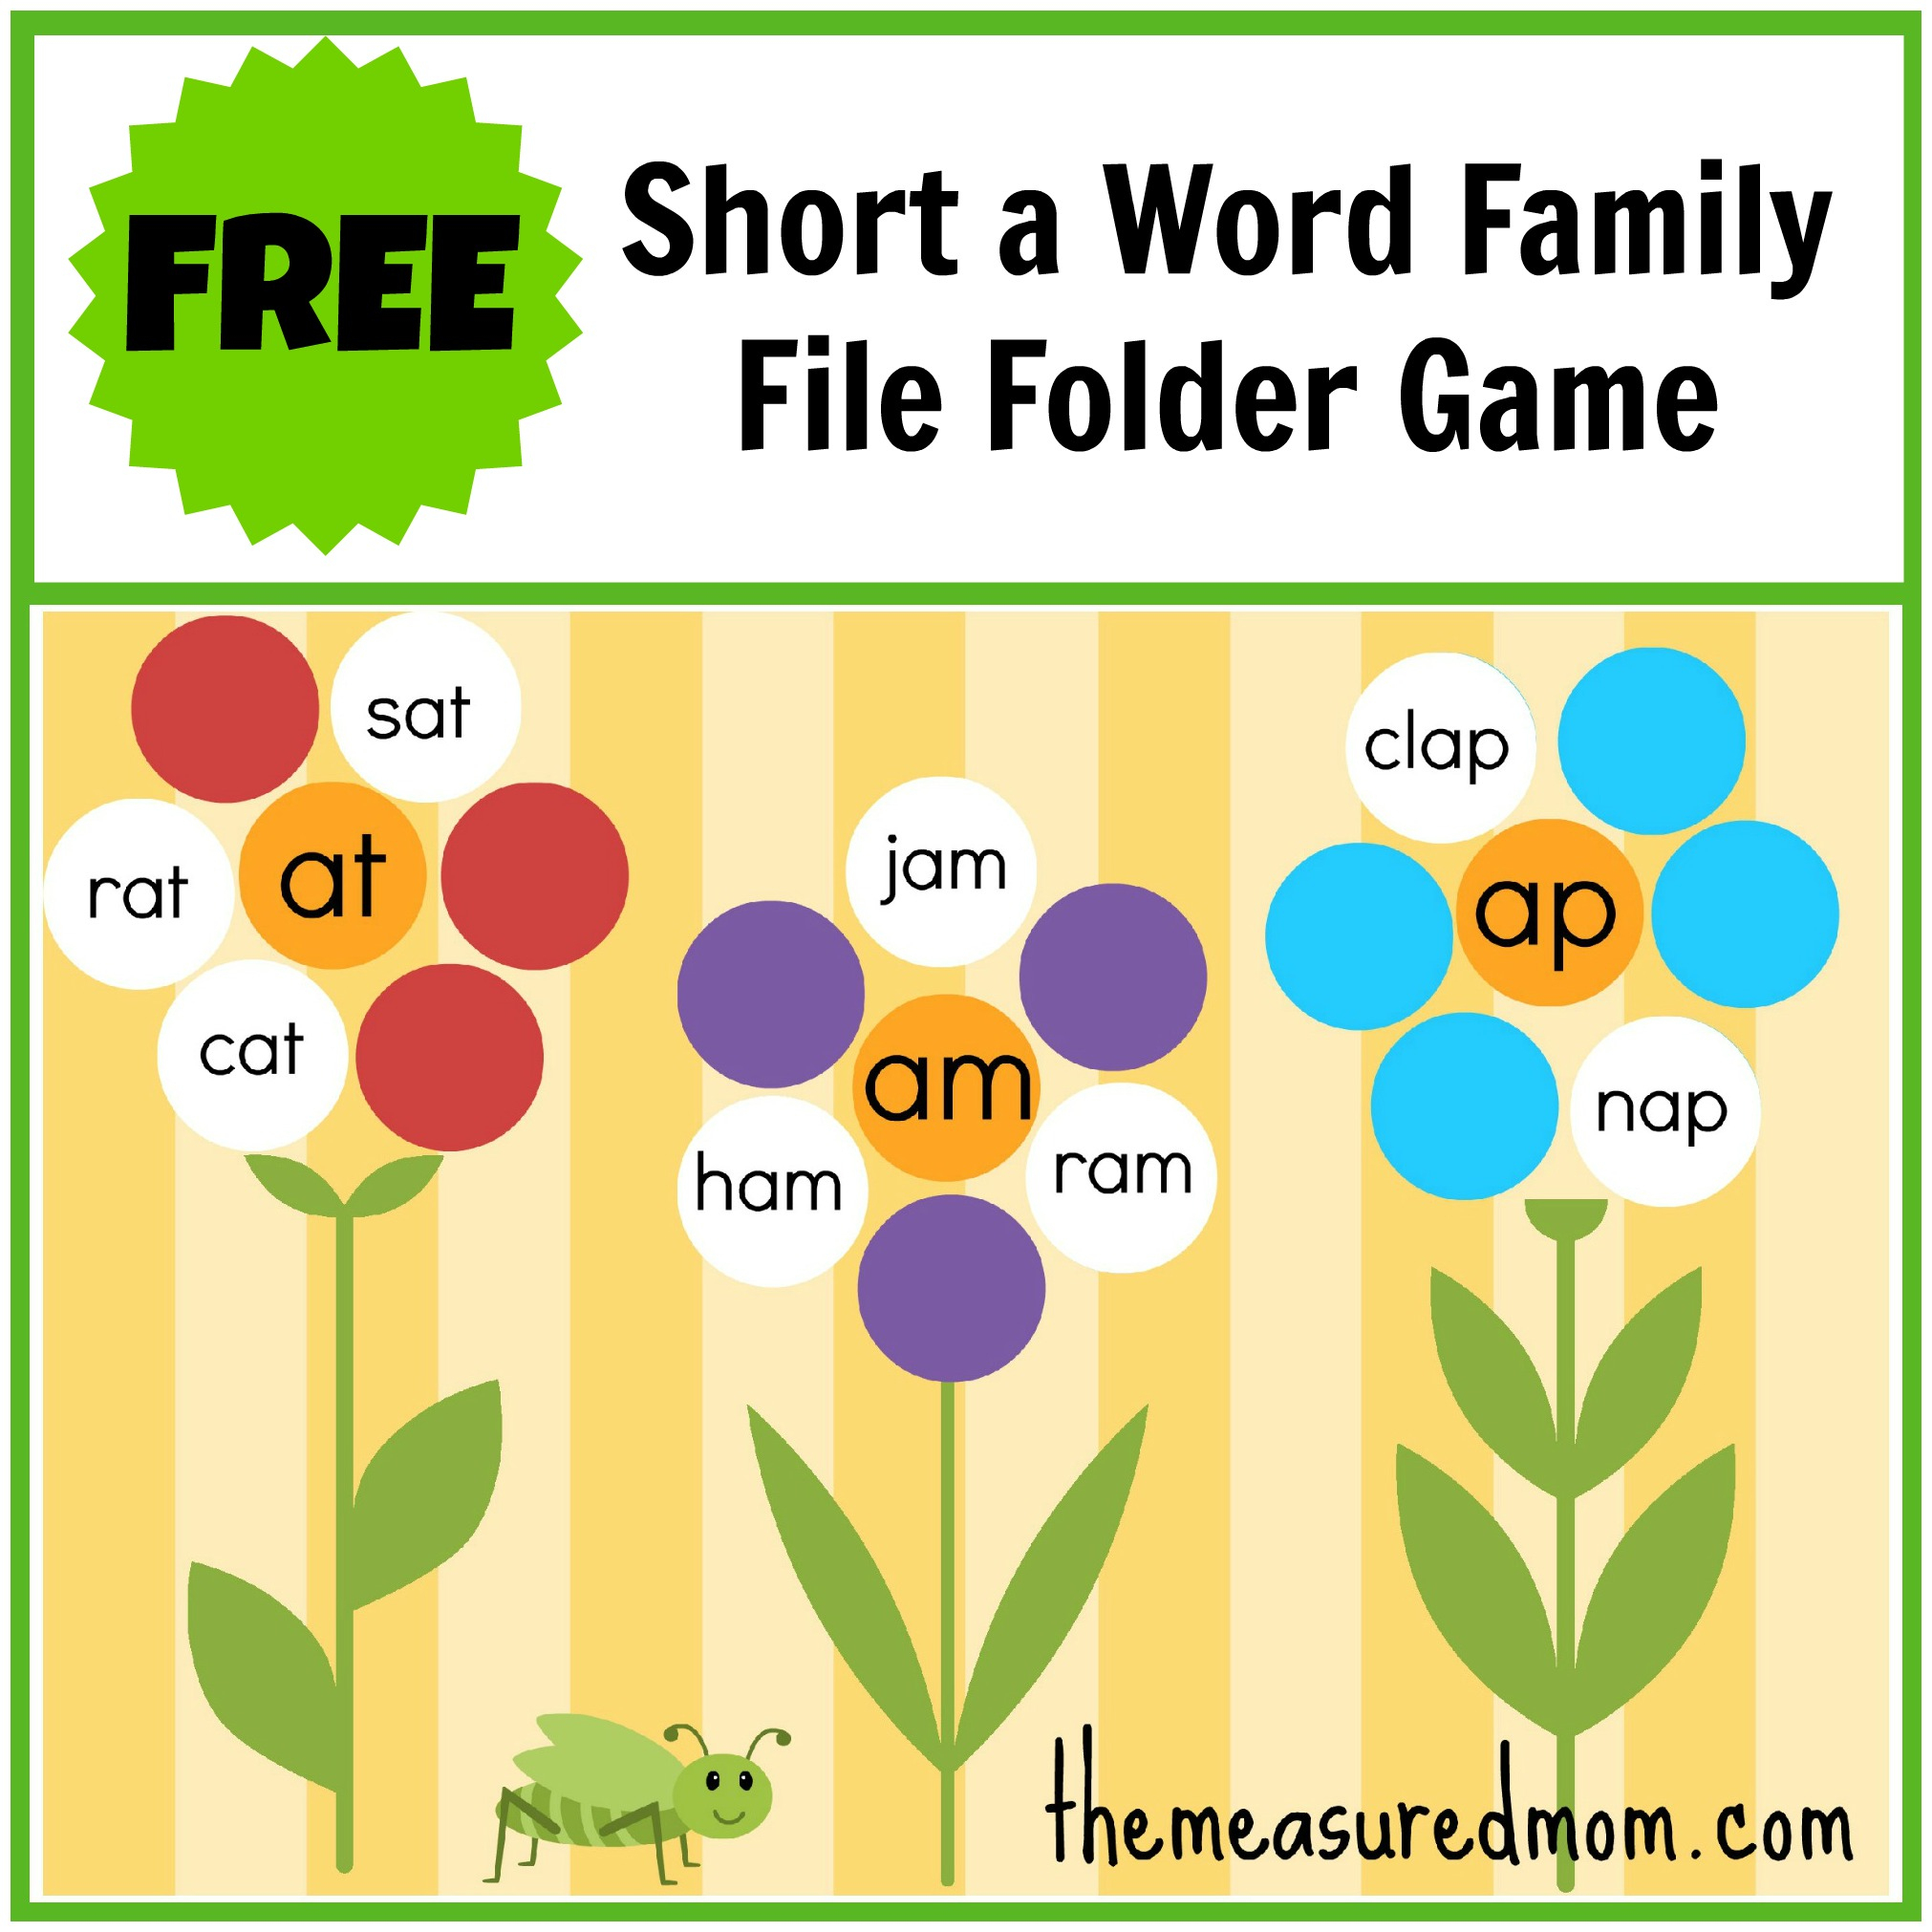 Free Word Family File Folder Game: Short A - The Measured Mom - Free Printable Word Family Games